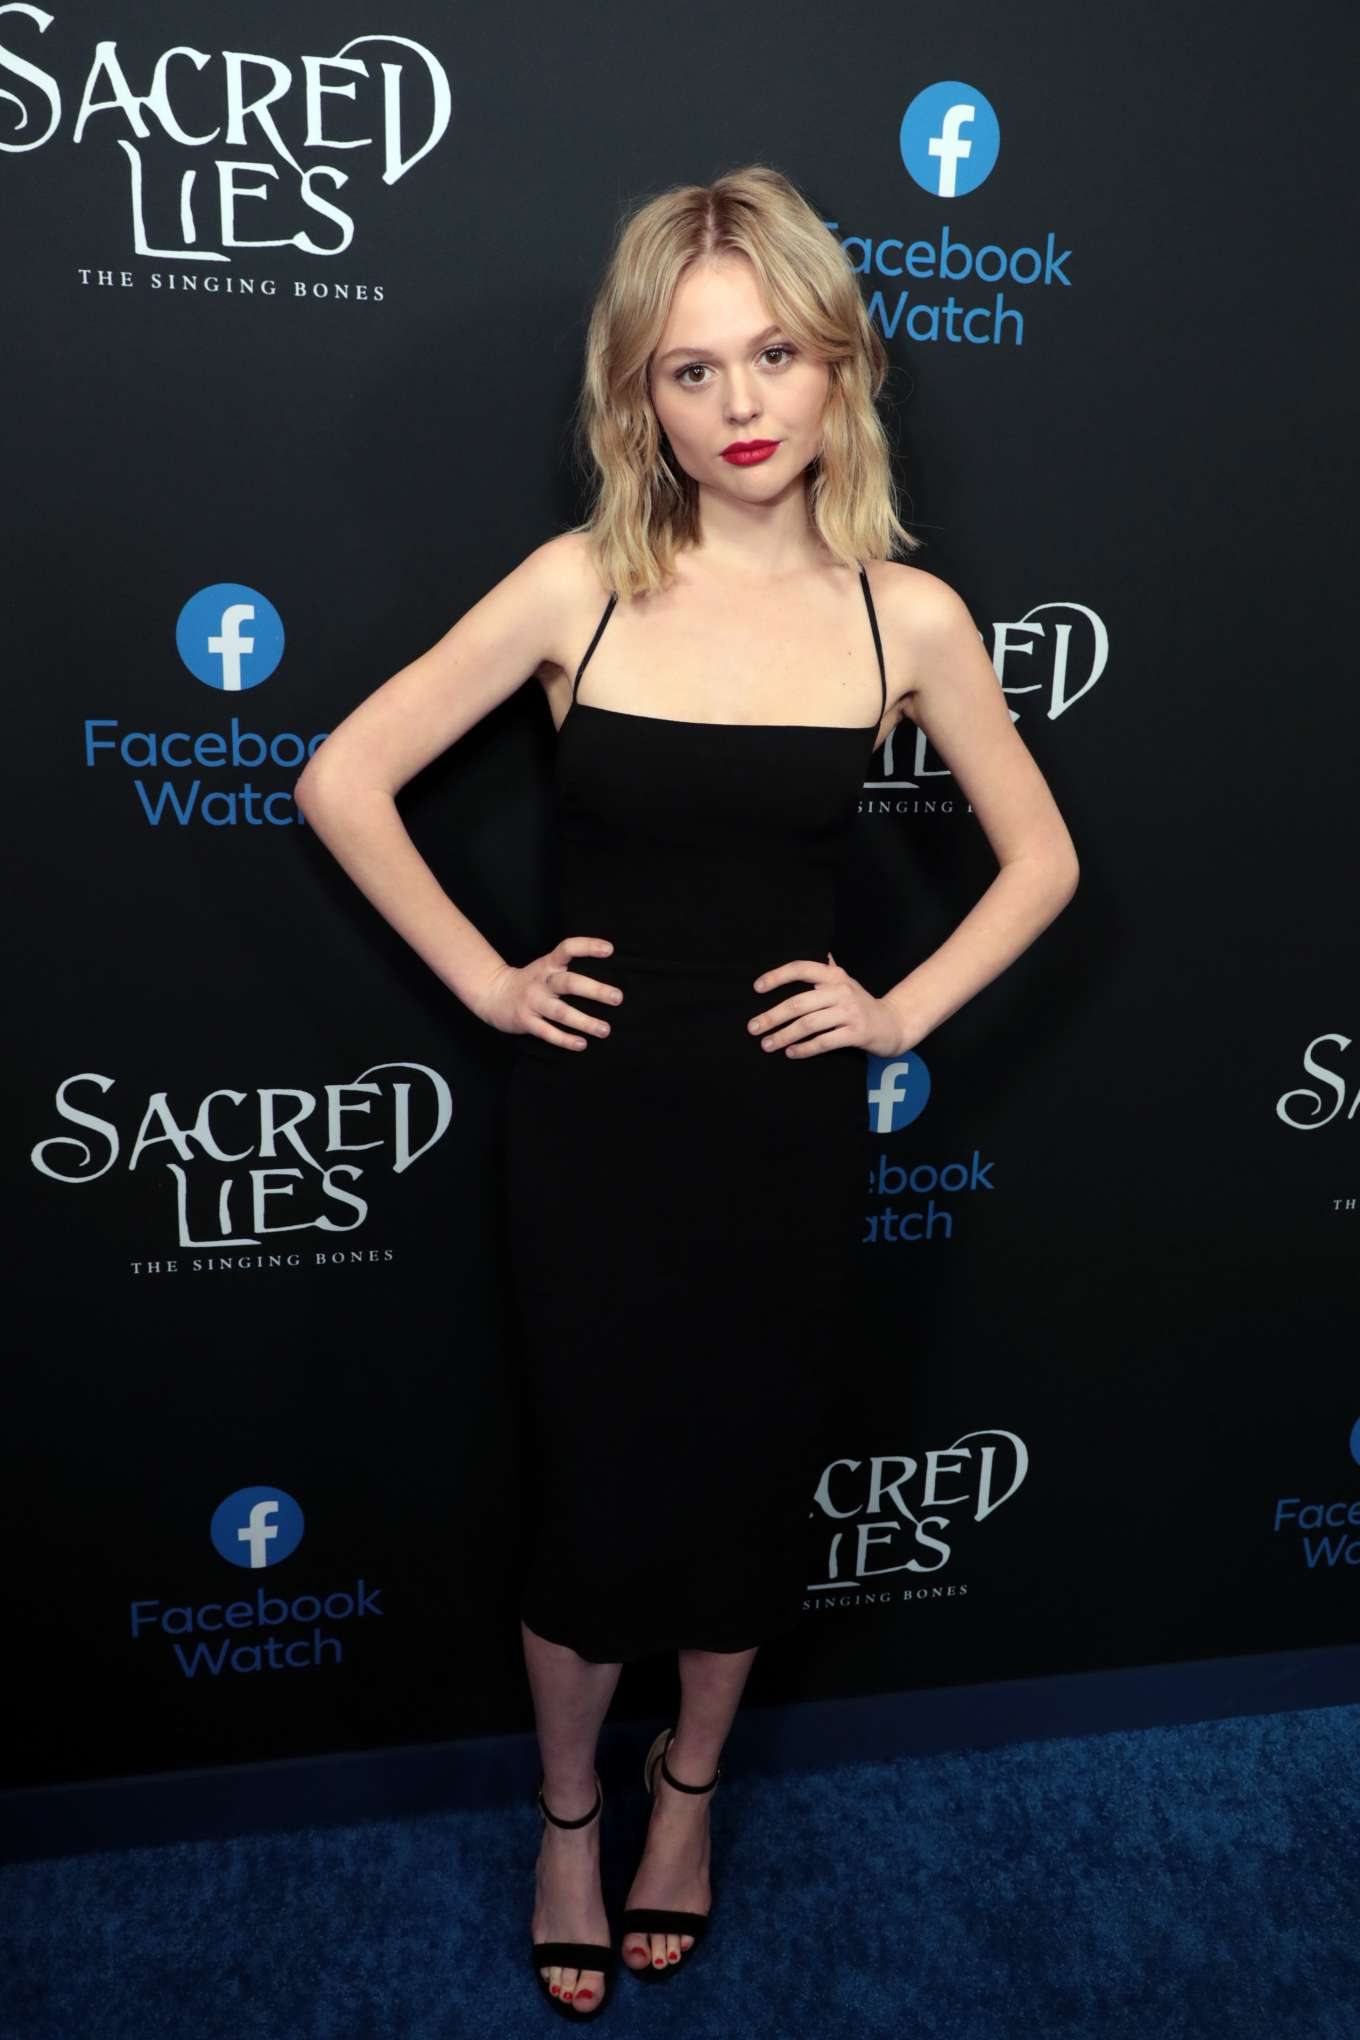 Emily Alyn Lind 2020 : Emily Alyn Lind – In black dress at Sacred Lies: The Singing Bones premiere in Los Angeles-09